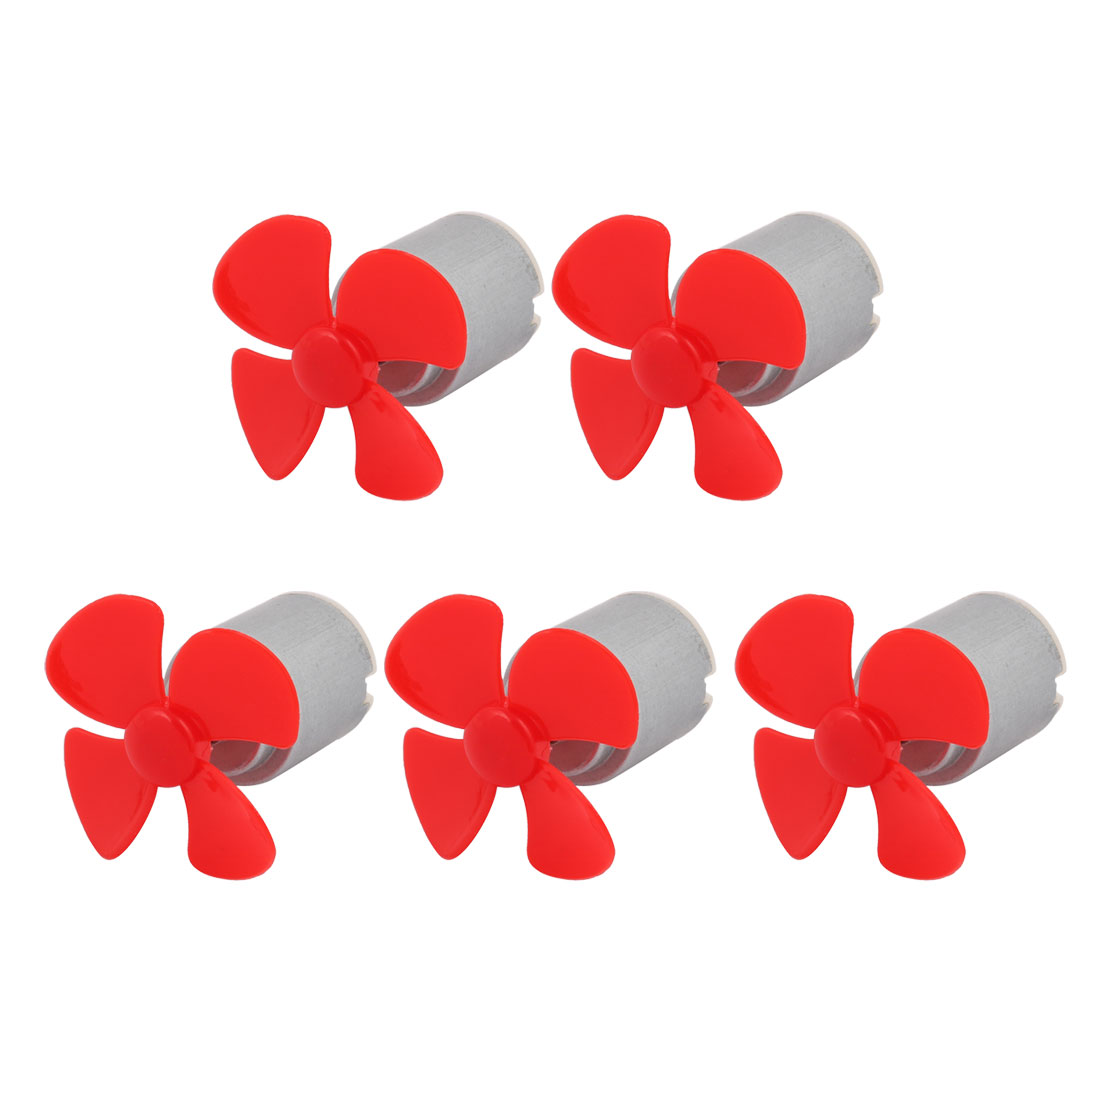 5pcs DC 3V 0.13A 6600RPM Strong Force Motor 4 Vanes 40mm Red Propeller for RC Aircraft